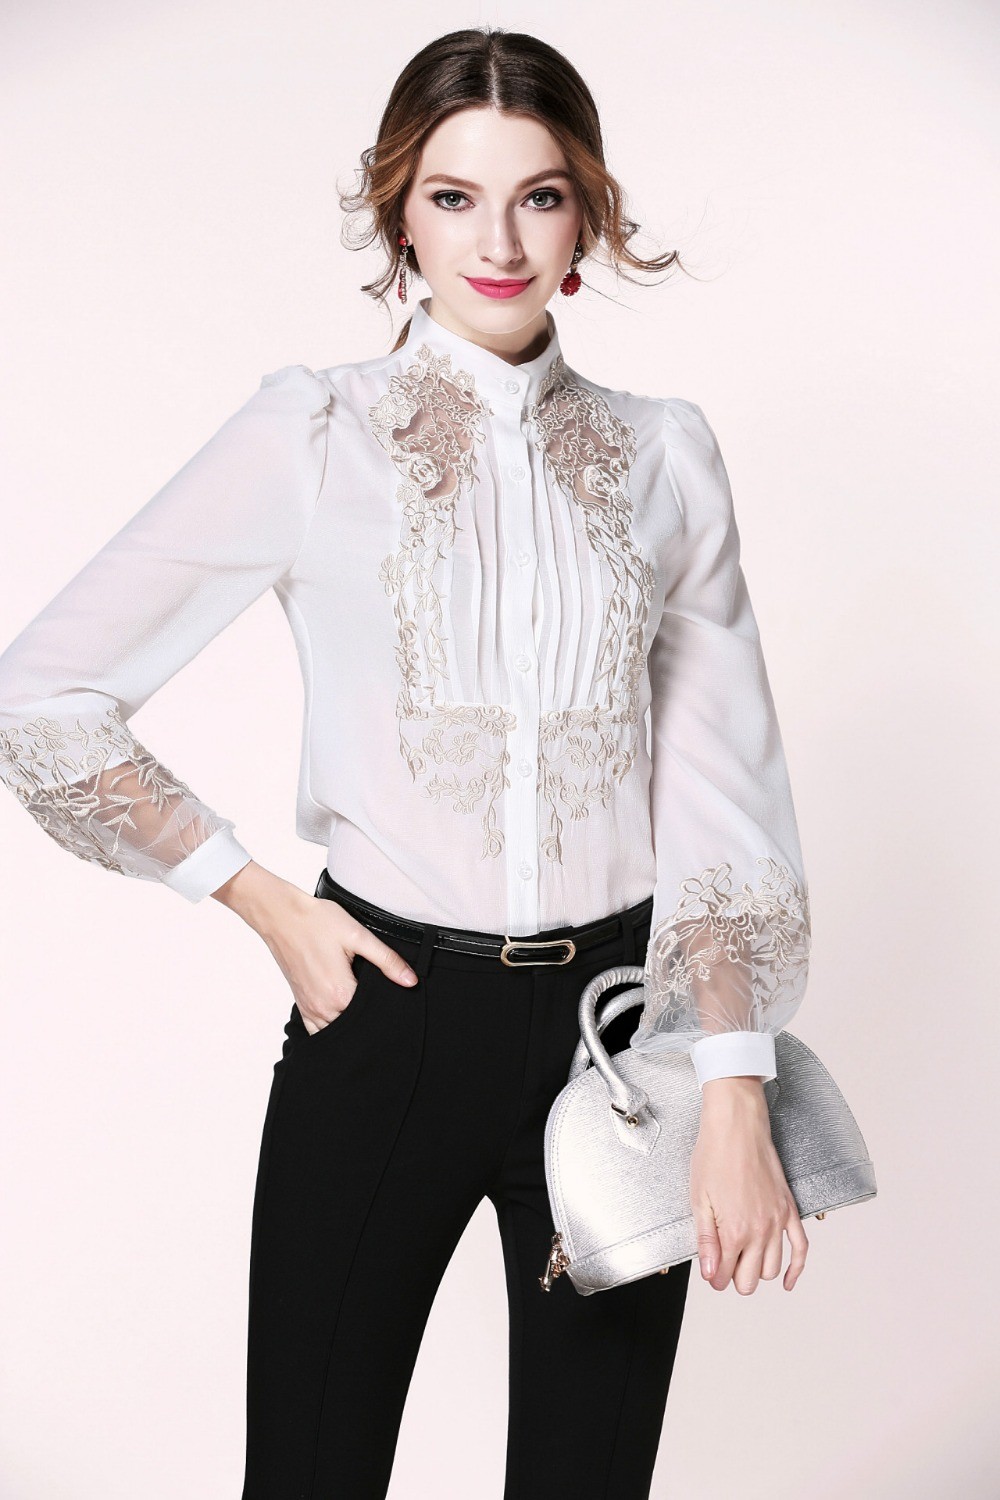 Ensotek Spring Designer Blouse Womens High Quality Puff Sleeve Stand Collar Gold Embroidery Bodysuit Shirt Tops